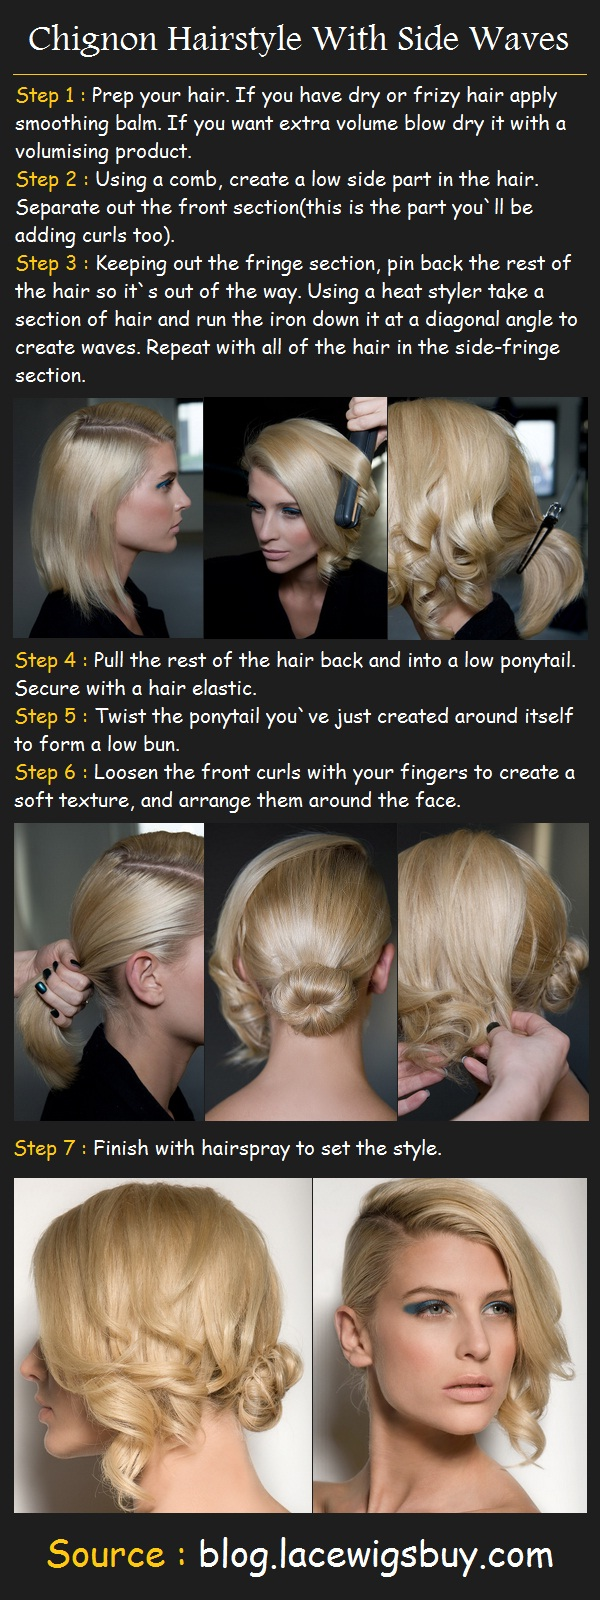 18 Great Ideas and Tutorials for Sophisticated Hairstyle (5)